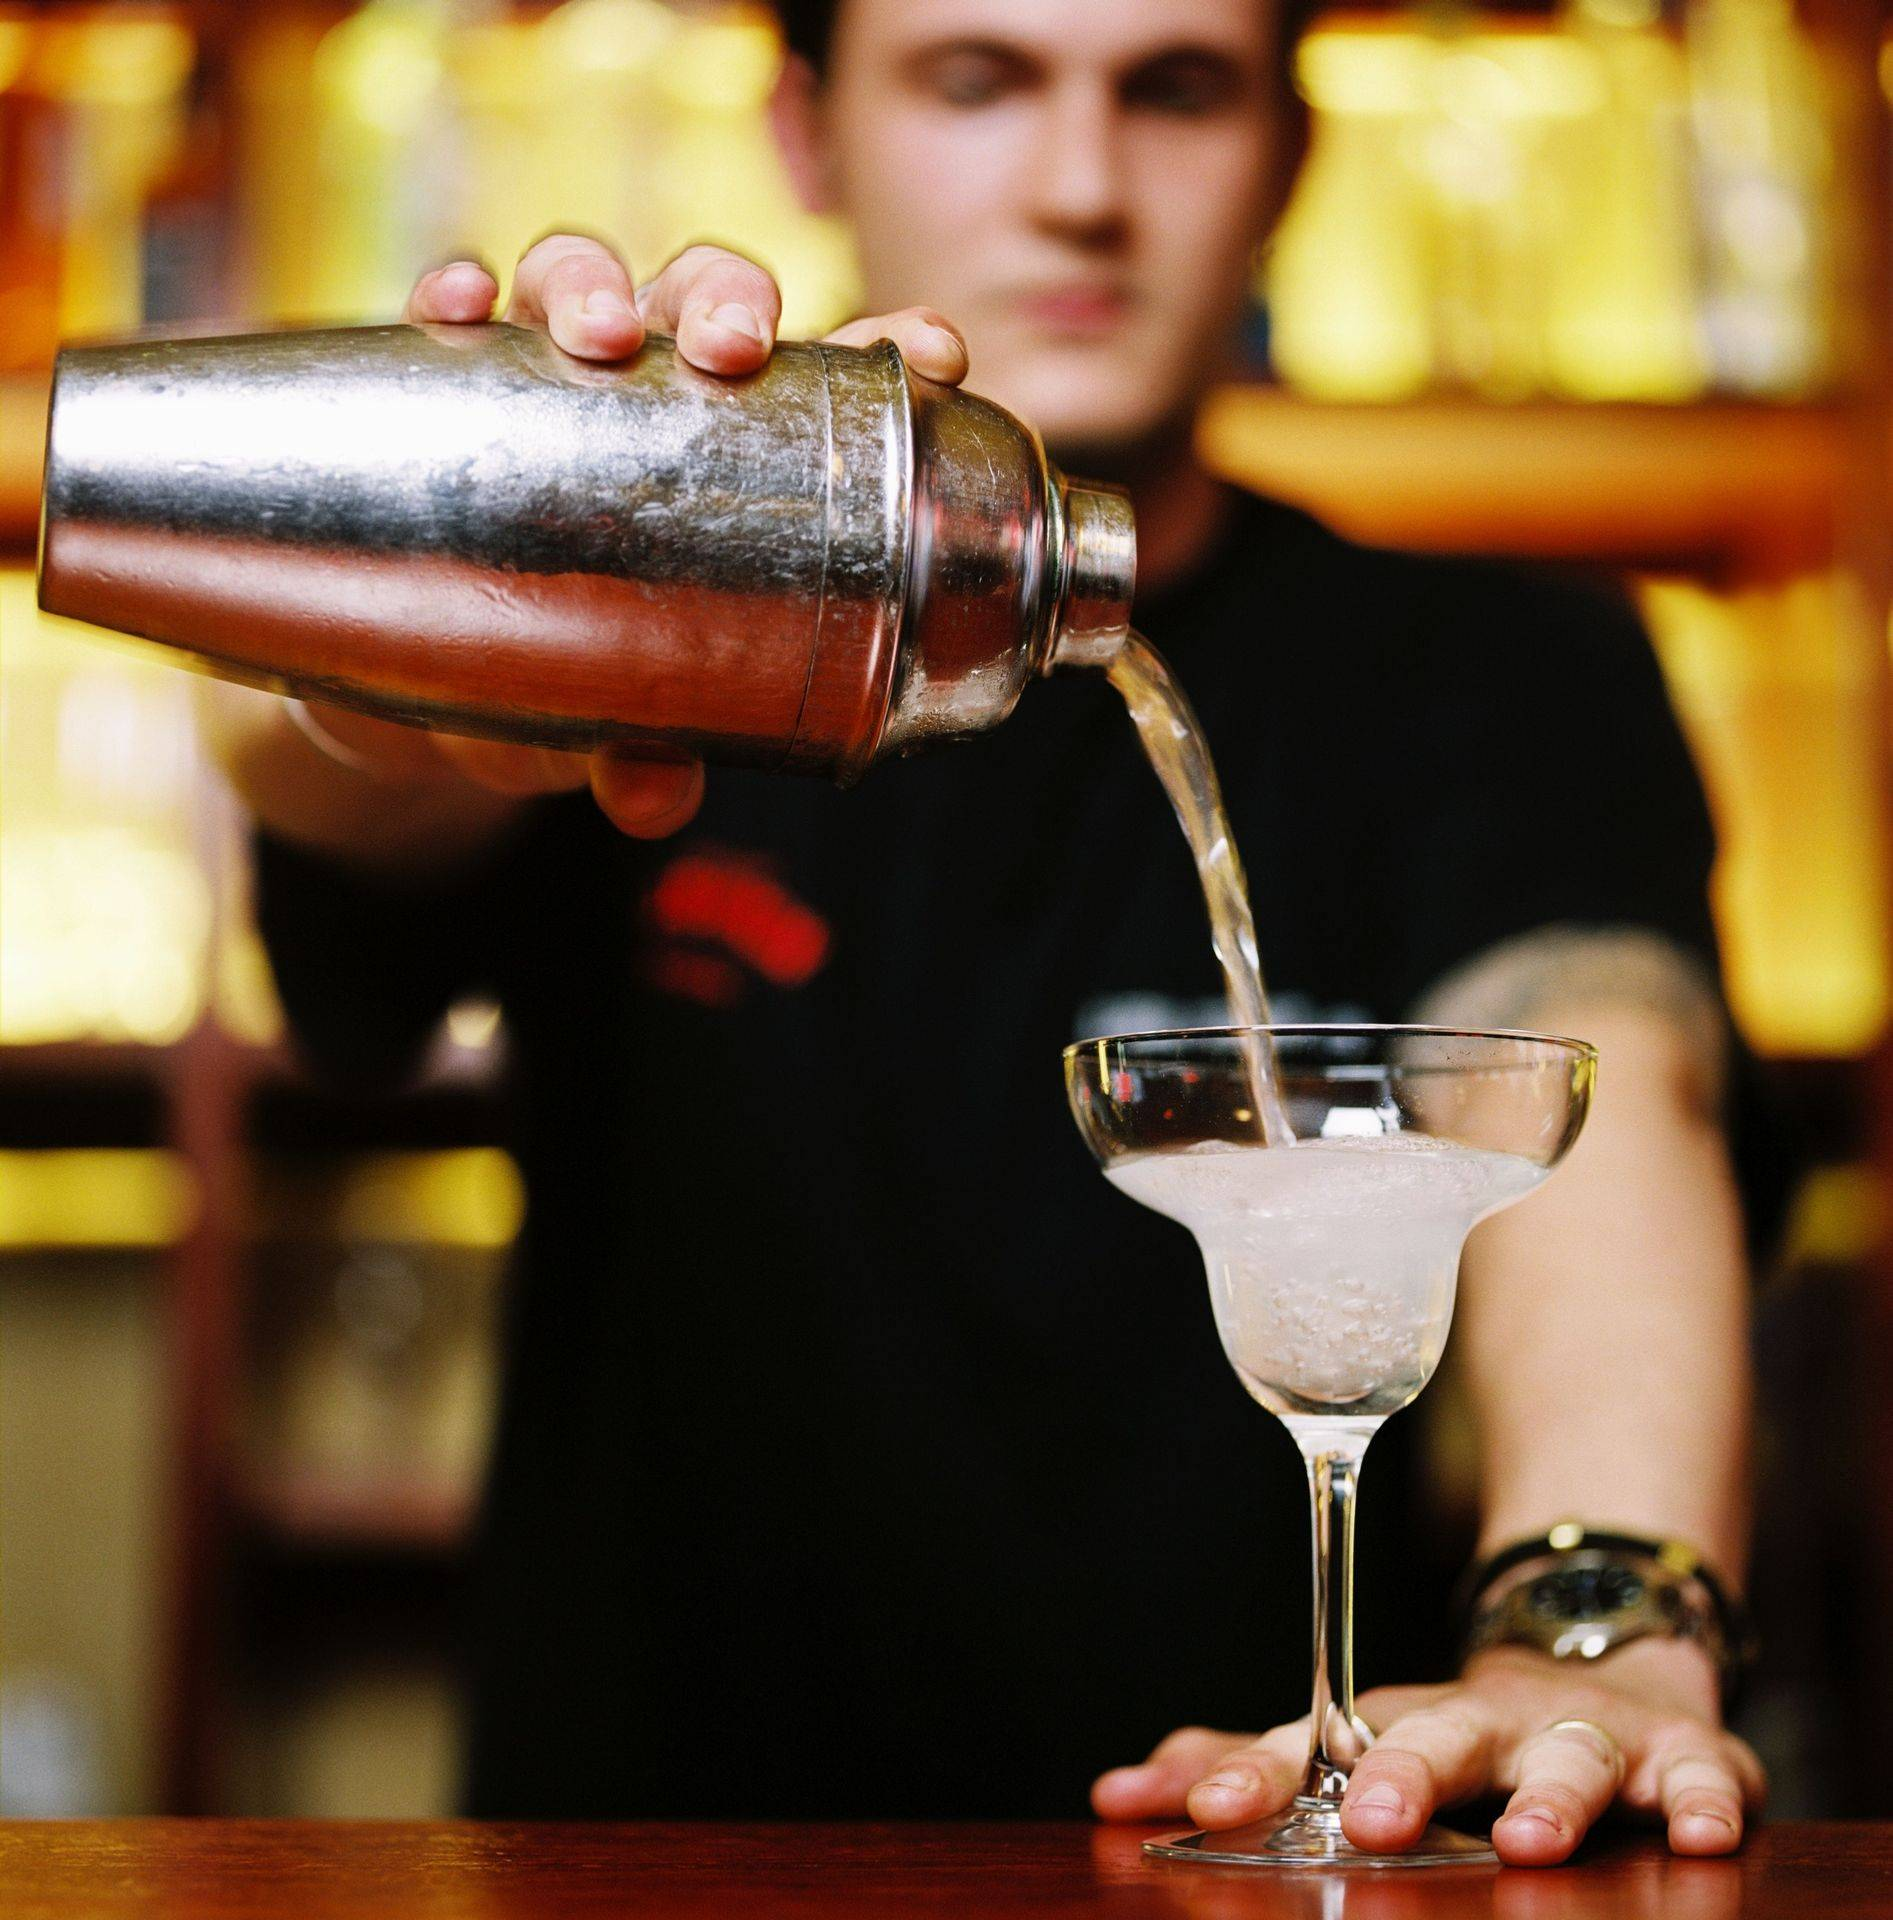 Flair Bartender making cocktail